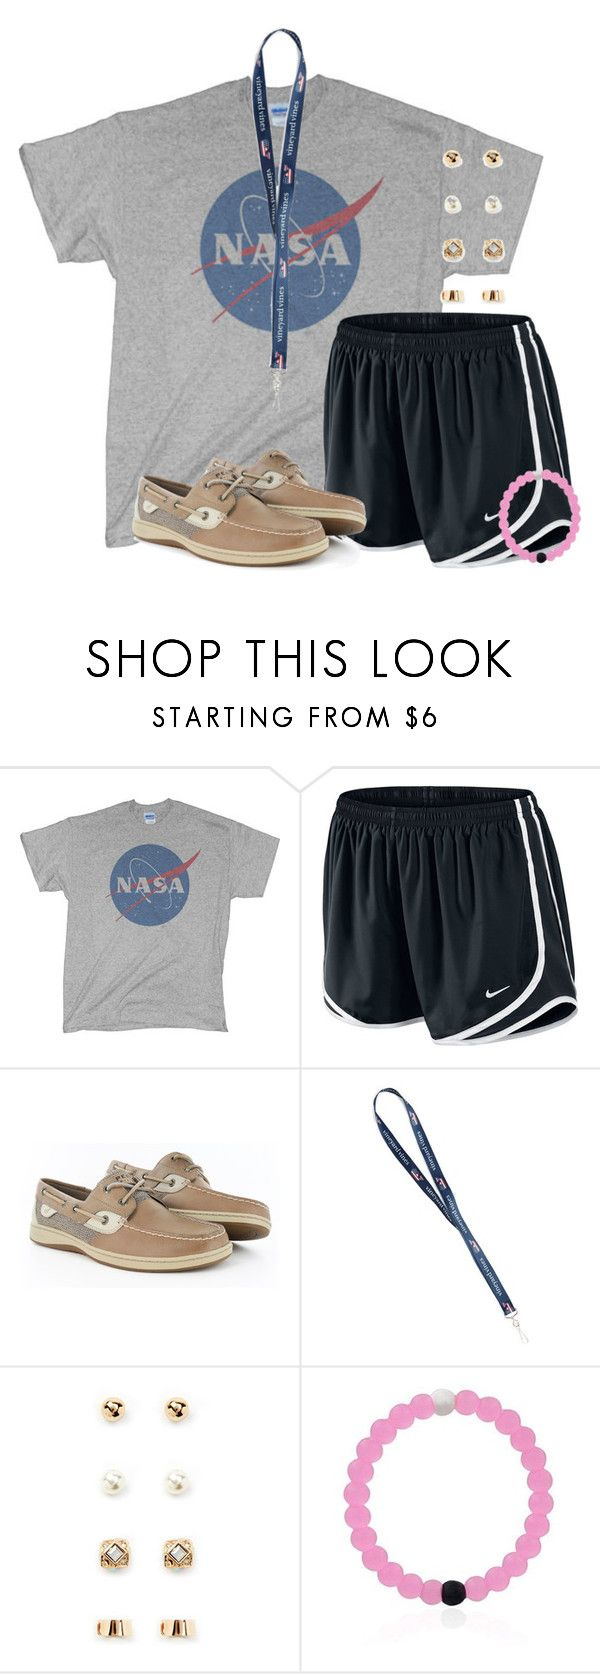 """Our first football game tomorrow!"" by flroasburn ❤ liked on Polyvore featuring NIKE, Sperry and Forever 21"